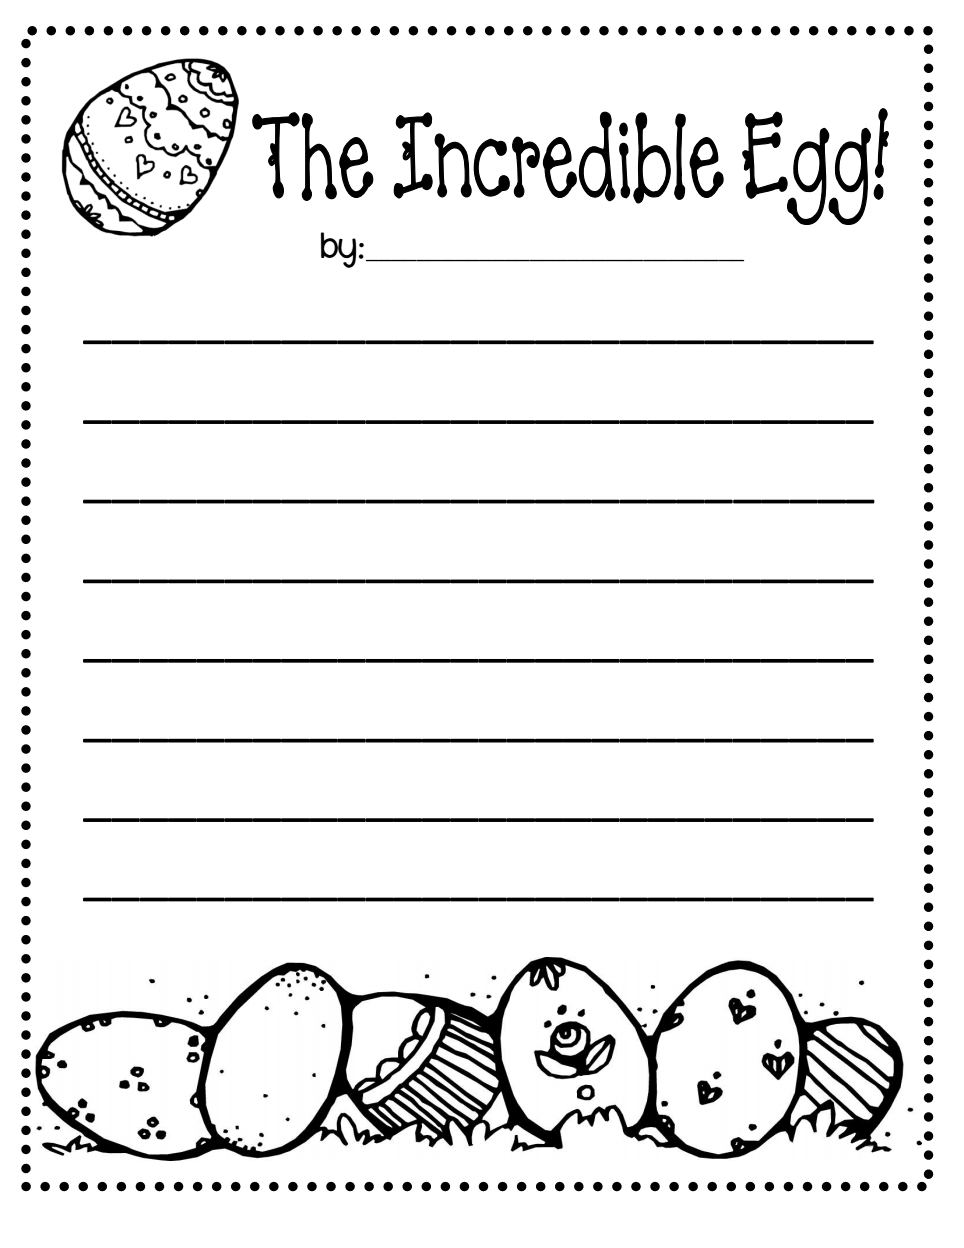 IncredibleEgg_Easter.pdf | Writing activities ...